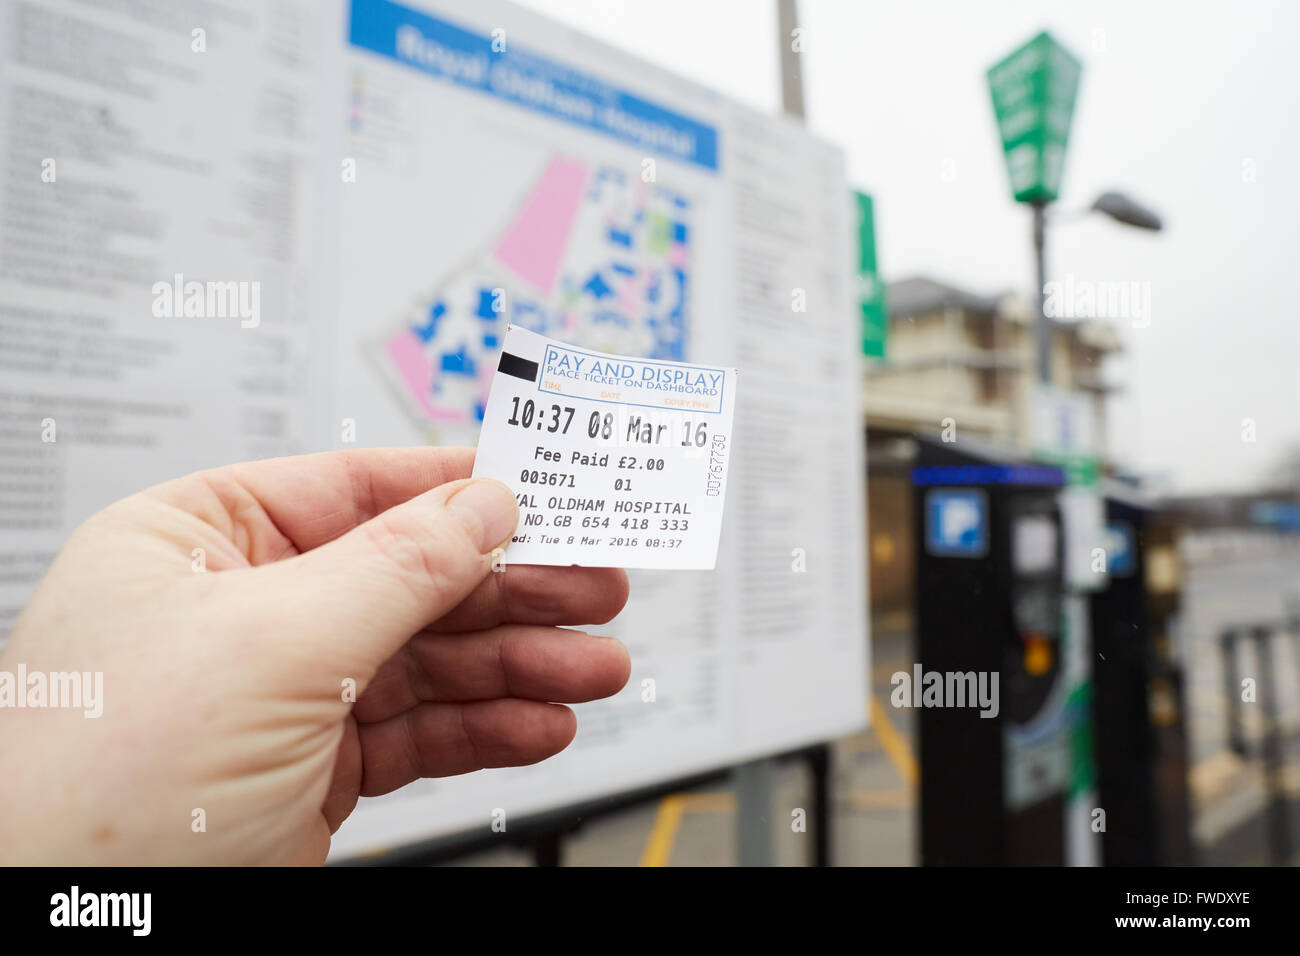 Oldham Royal Pennine Acute Hospitals NHS Trust parking ticket in hand - Stock Image